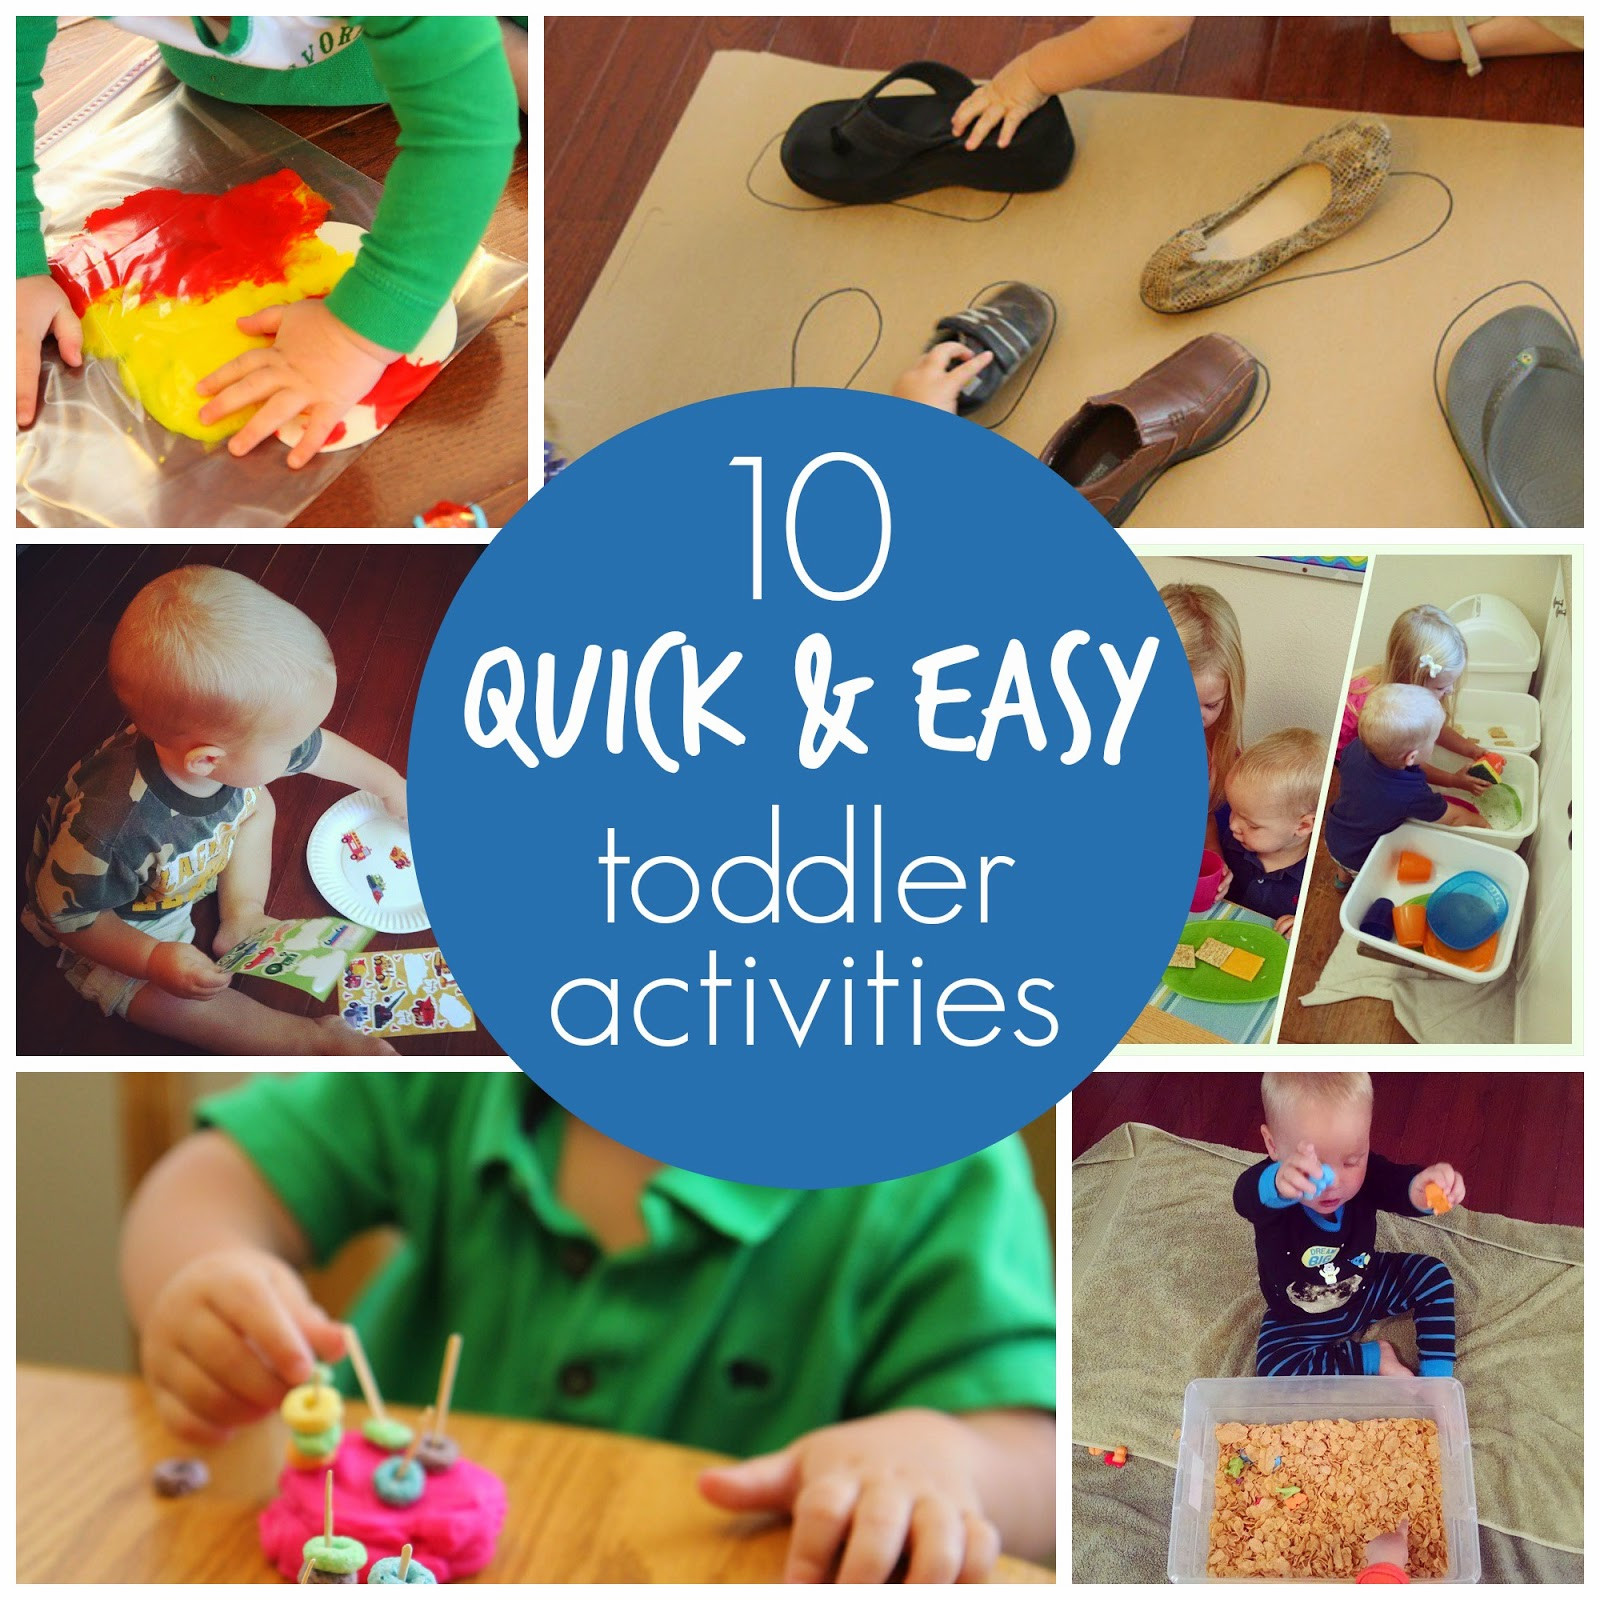 Best ideas about Easy Kids Activities . Save or Pin Toddler Approved 10 Quick & Easy Toddler Activities Now.